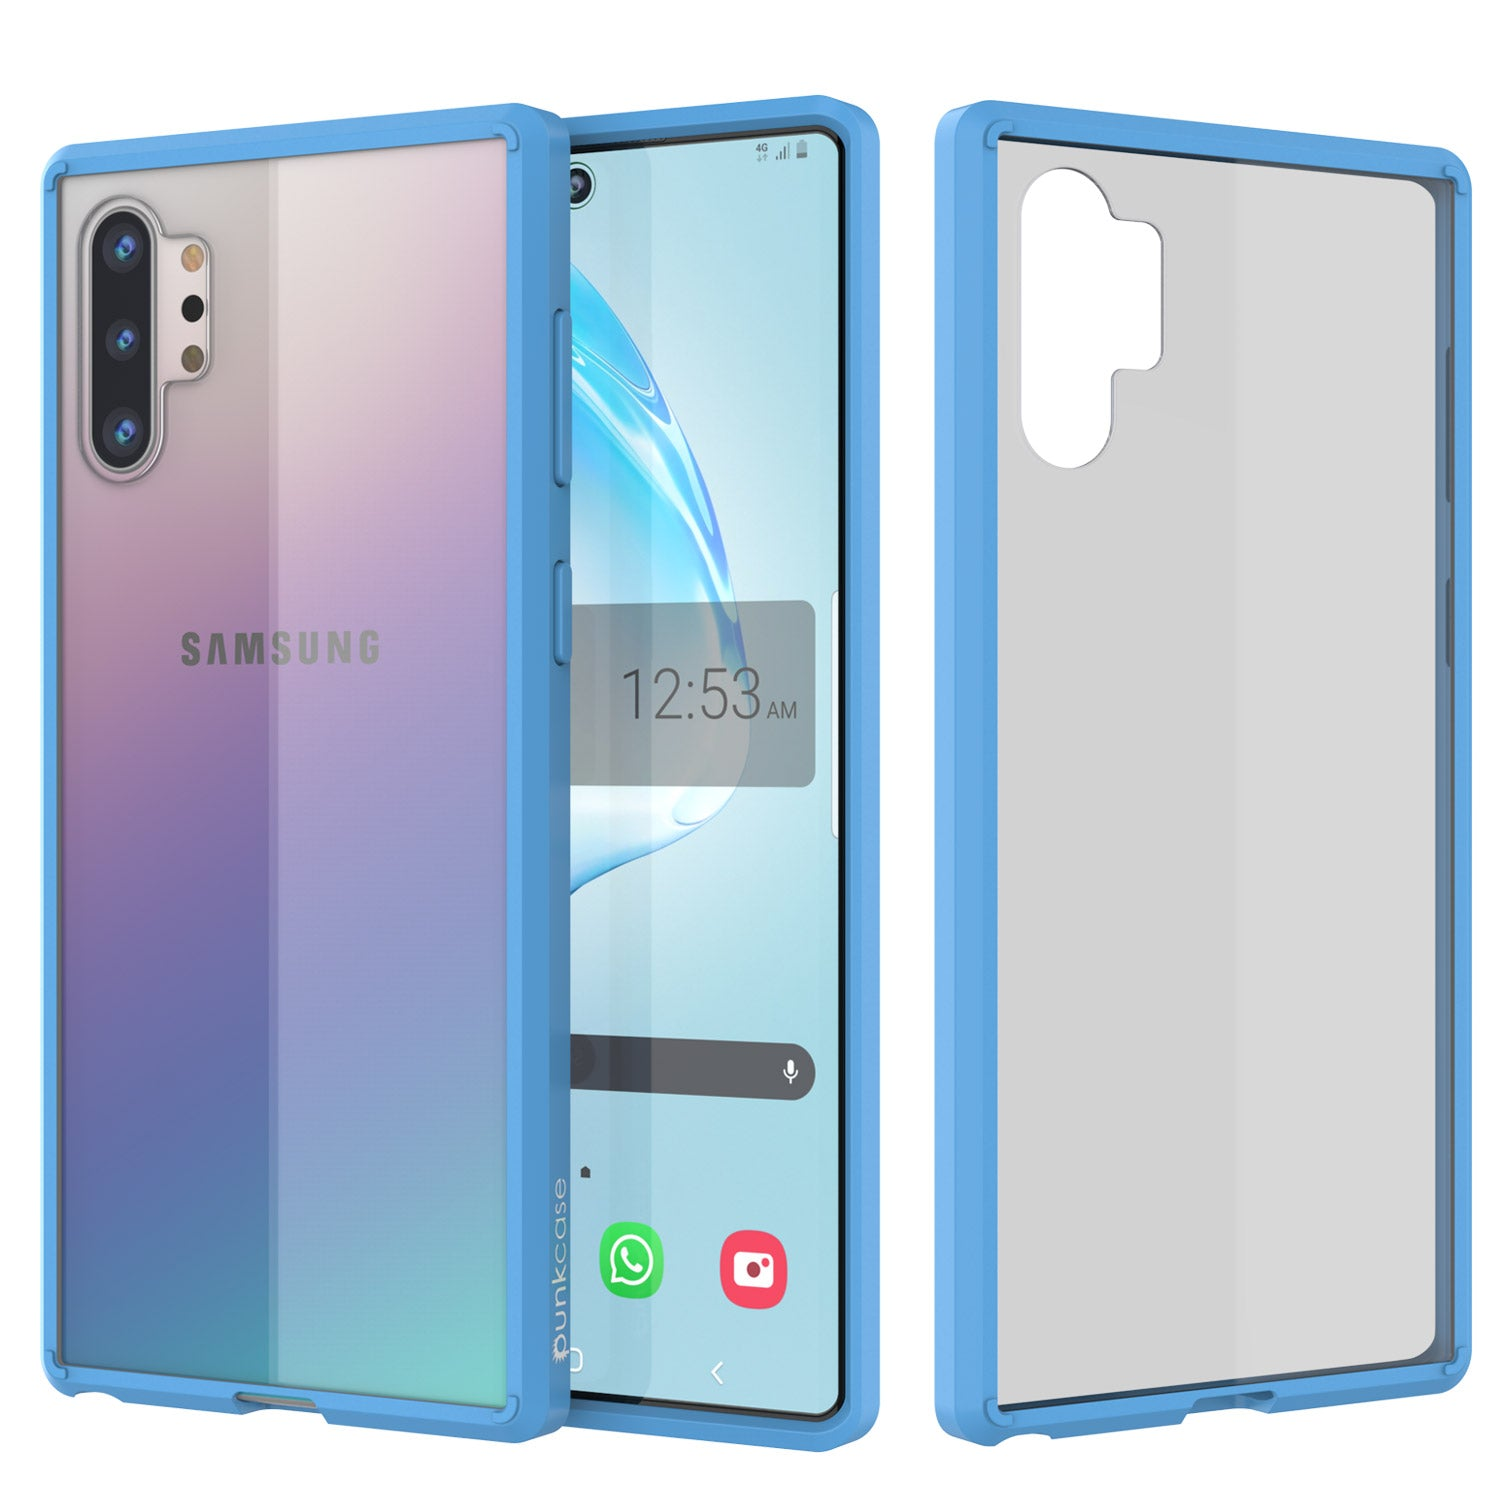 Galaxy Note 10+ Plus Punkcase Lucid-2.0 Series Slim Fit Armor Light Blue Case Cover